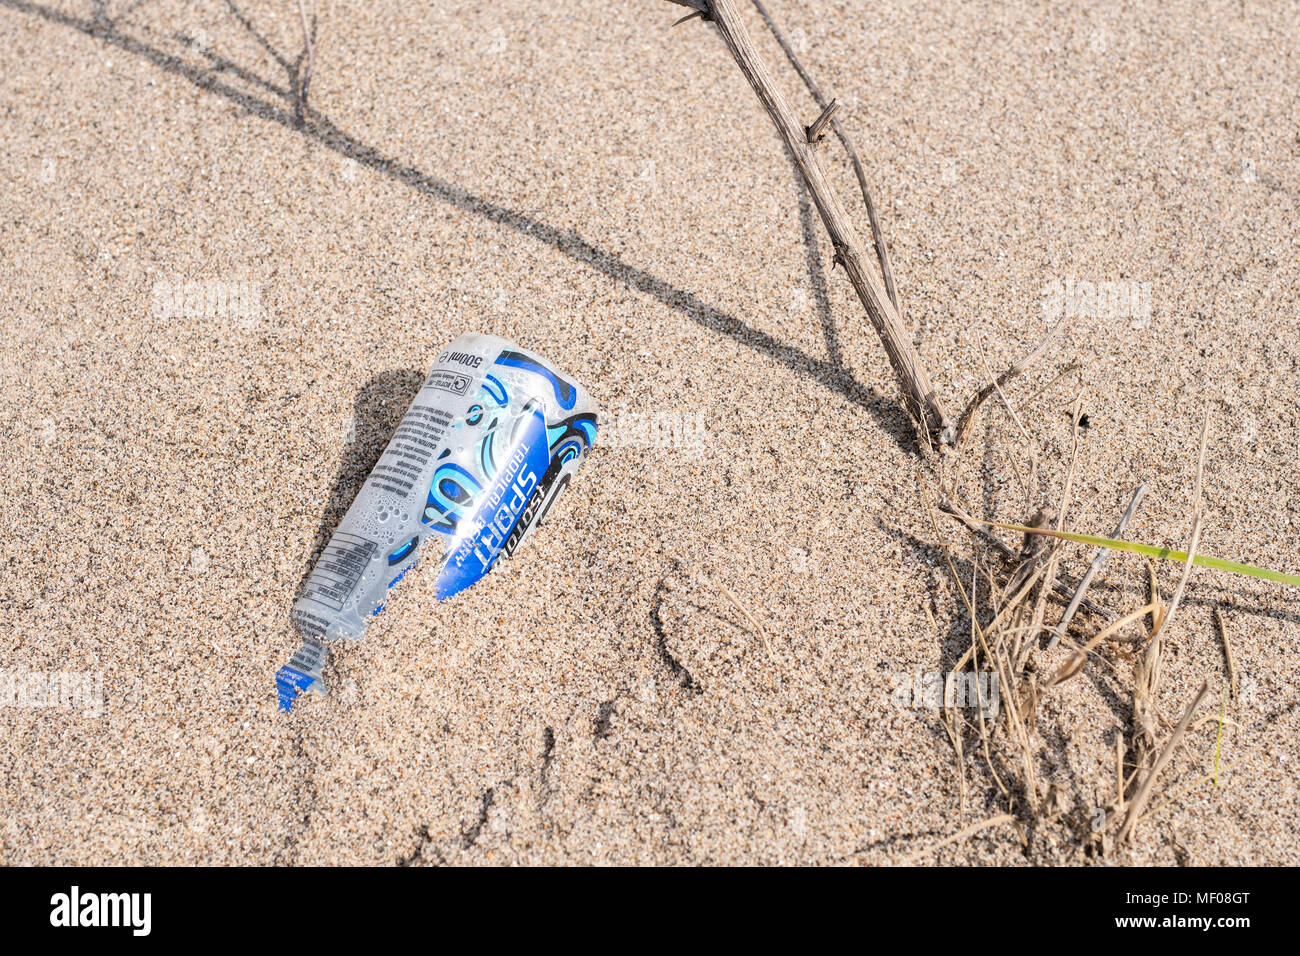 Drinks bottle discarded on beach - Stock Image